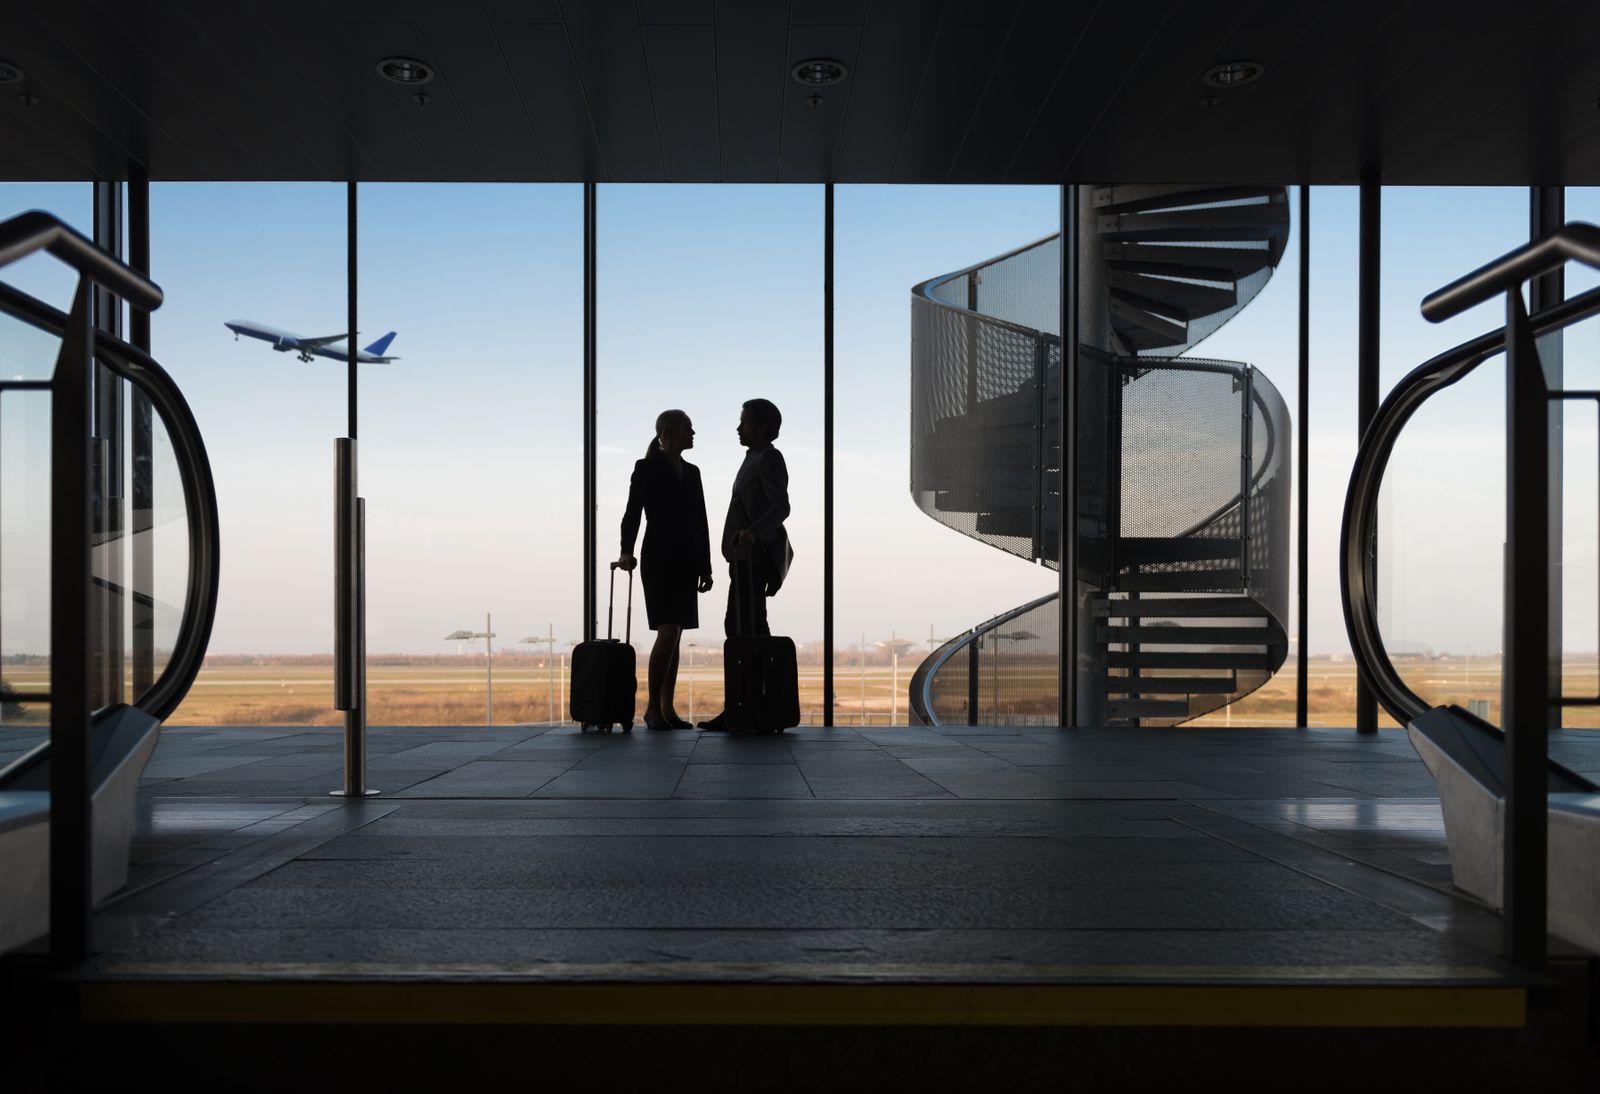 Silhouette Business Travellers At Airport